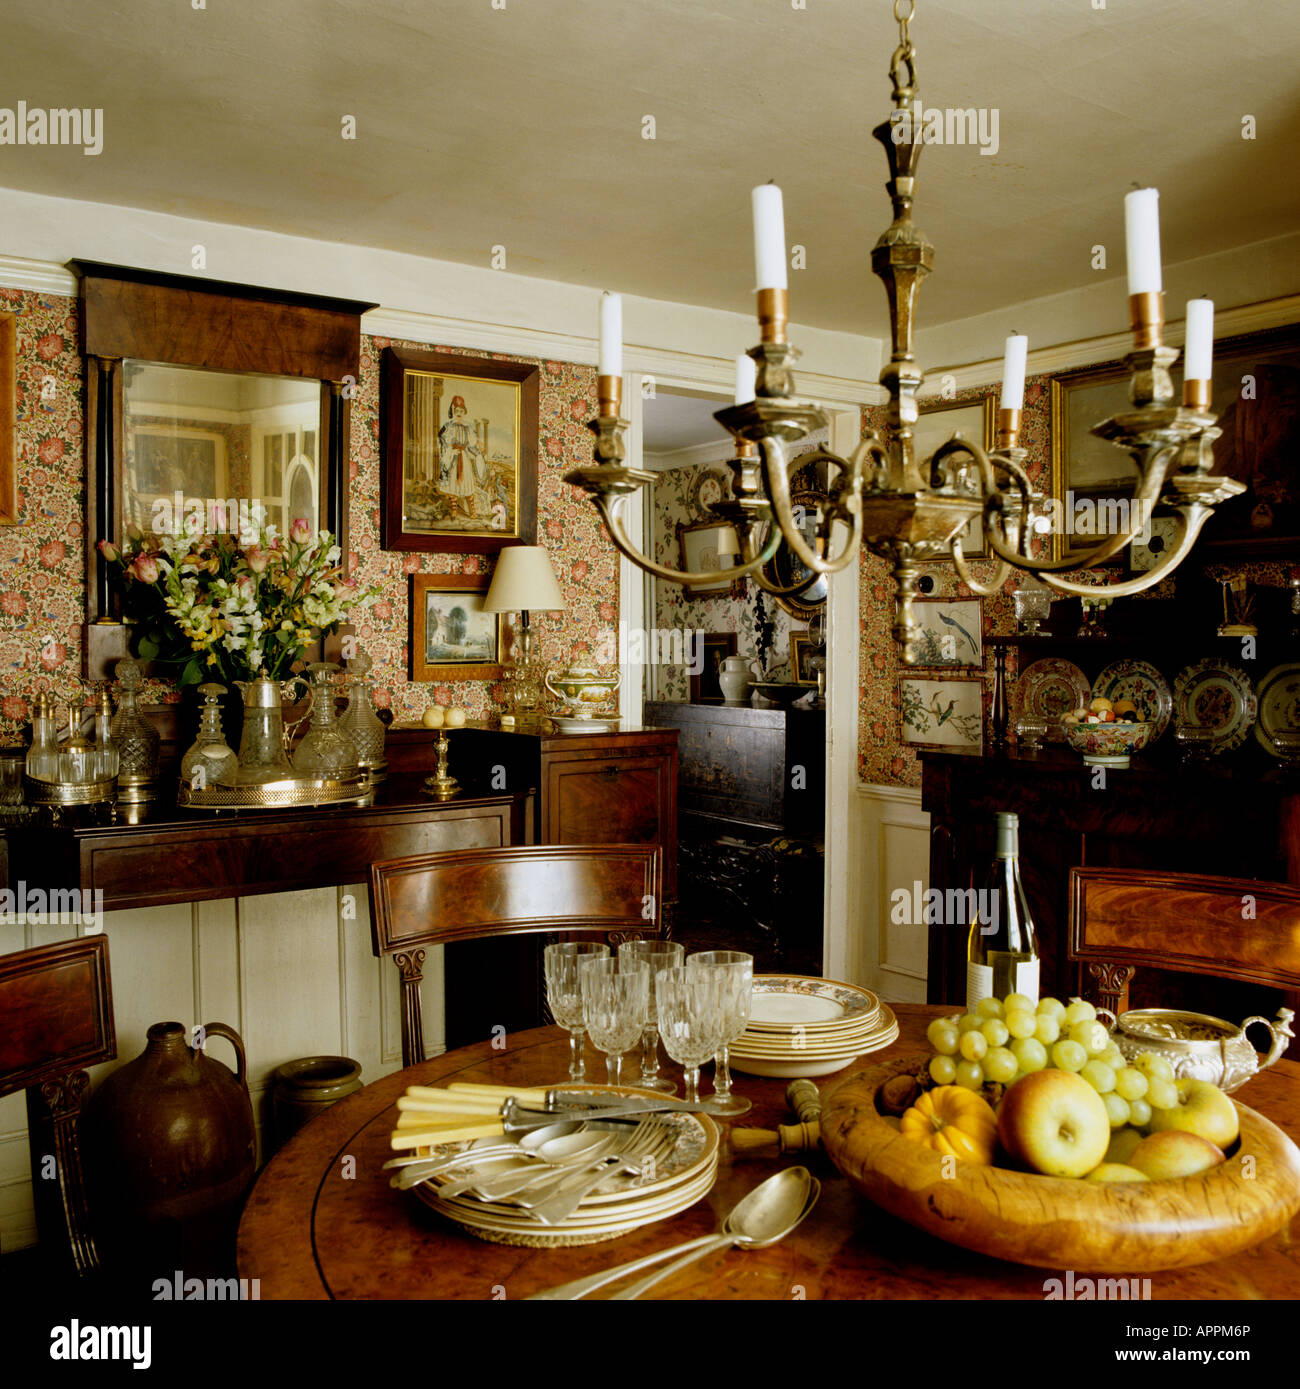 Merveilleux Dining Room With Fruit Bowl In Traditional English Country ...